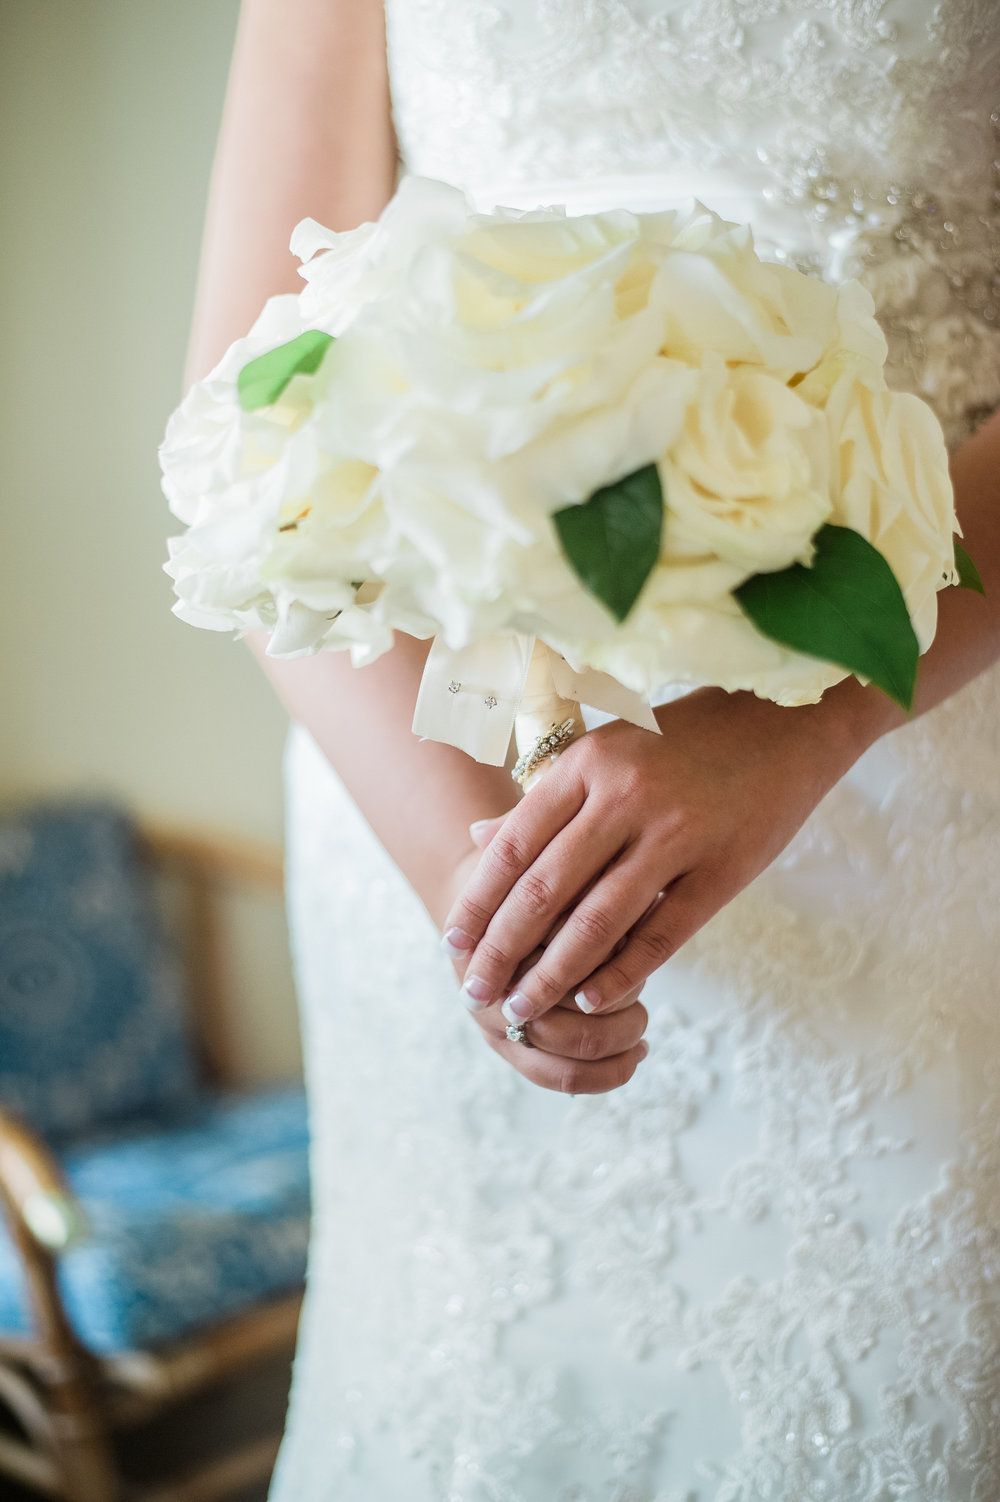 Plan Our Day Houston | Wedding Coordinators | Kemah, TX Wedding at Texas Corinithian Yacht Club